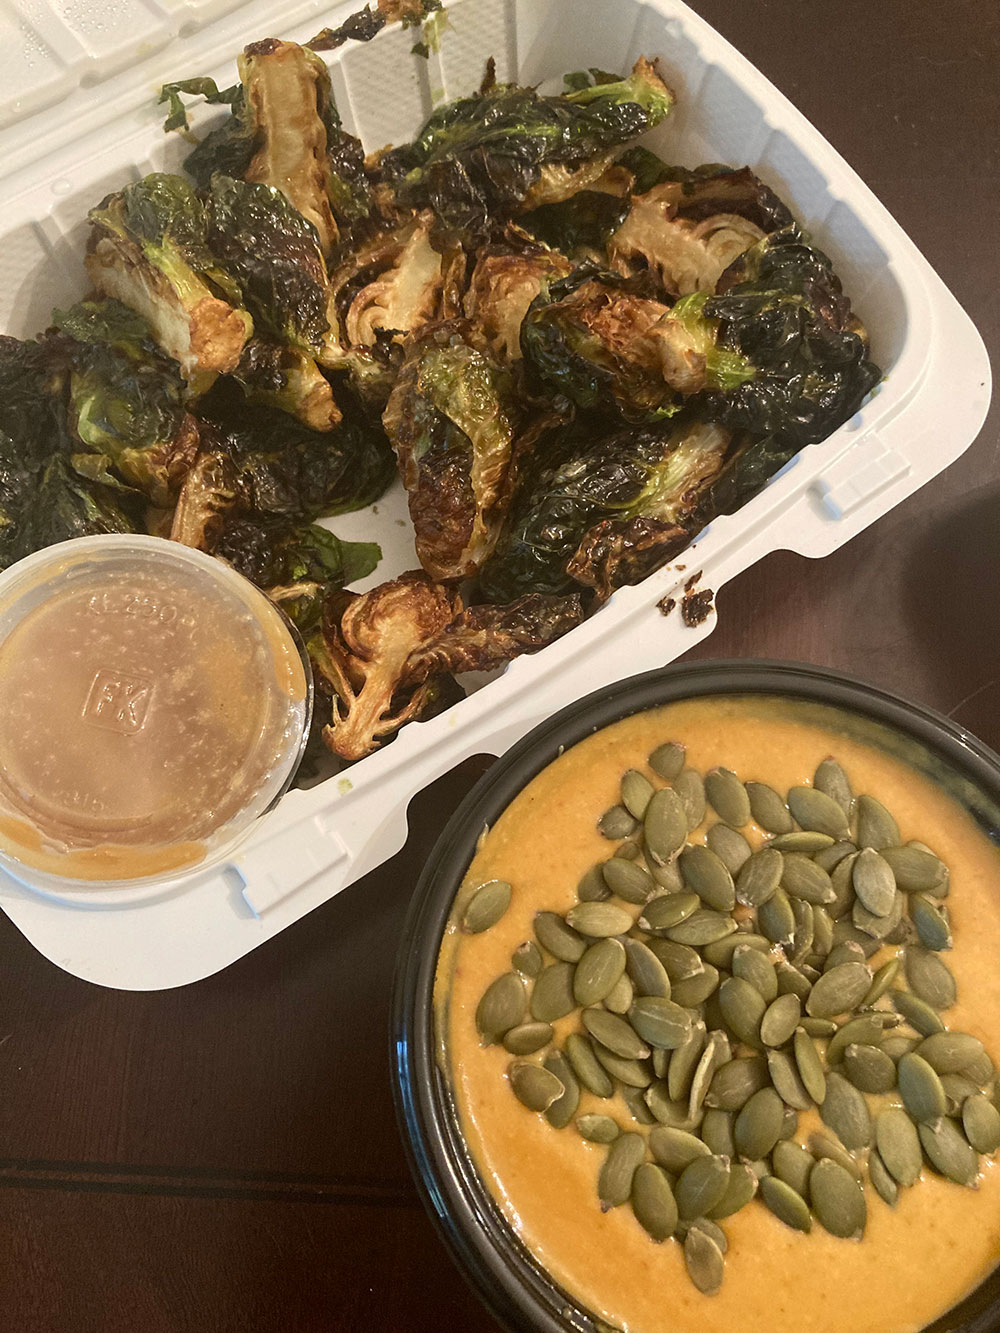 Vegan brussel sprouts and pumpkin curry soup by Golden West Cafe